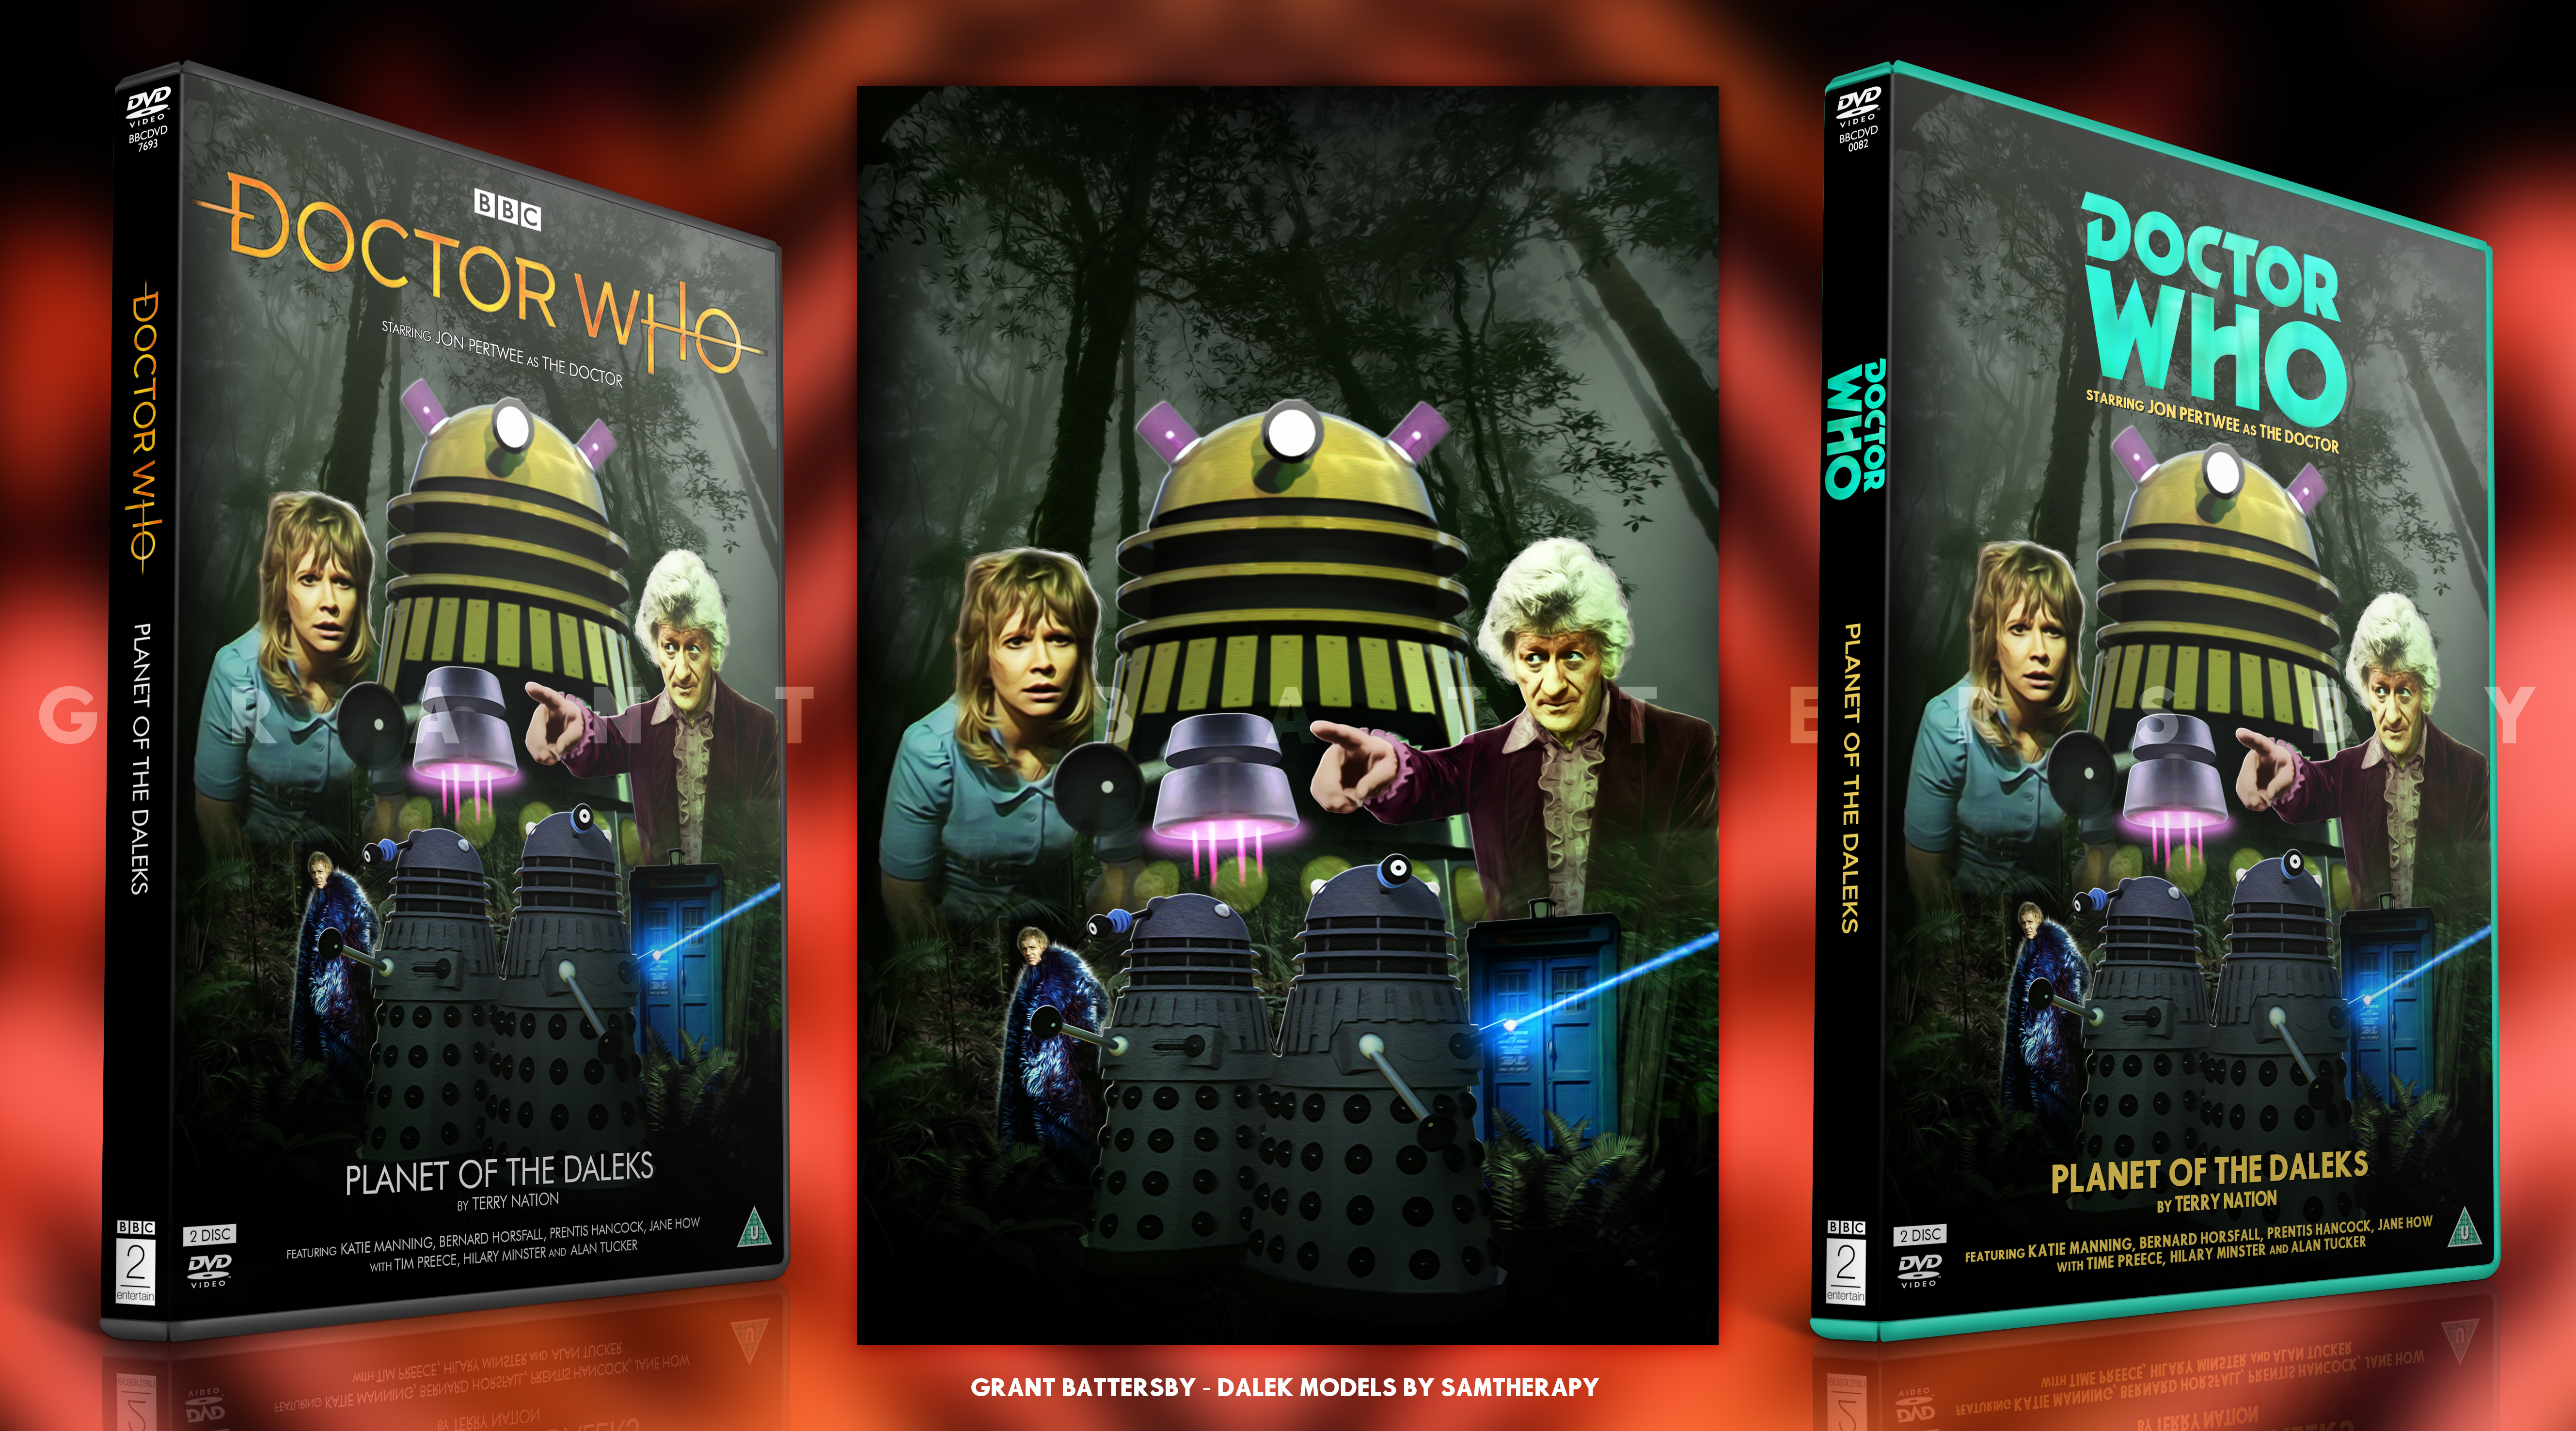 Doctor Who - Planet of the Daleks DVD Cover by GrantBattersby